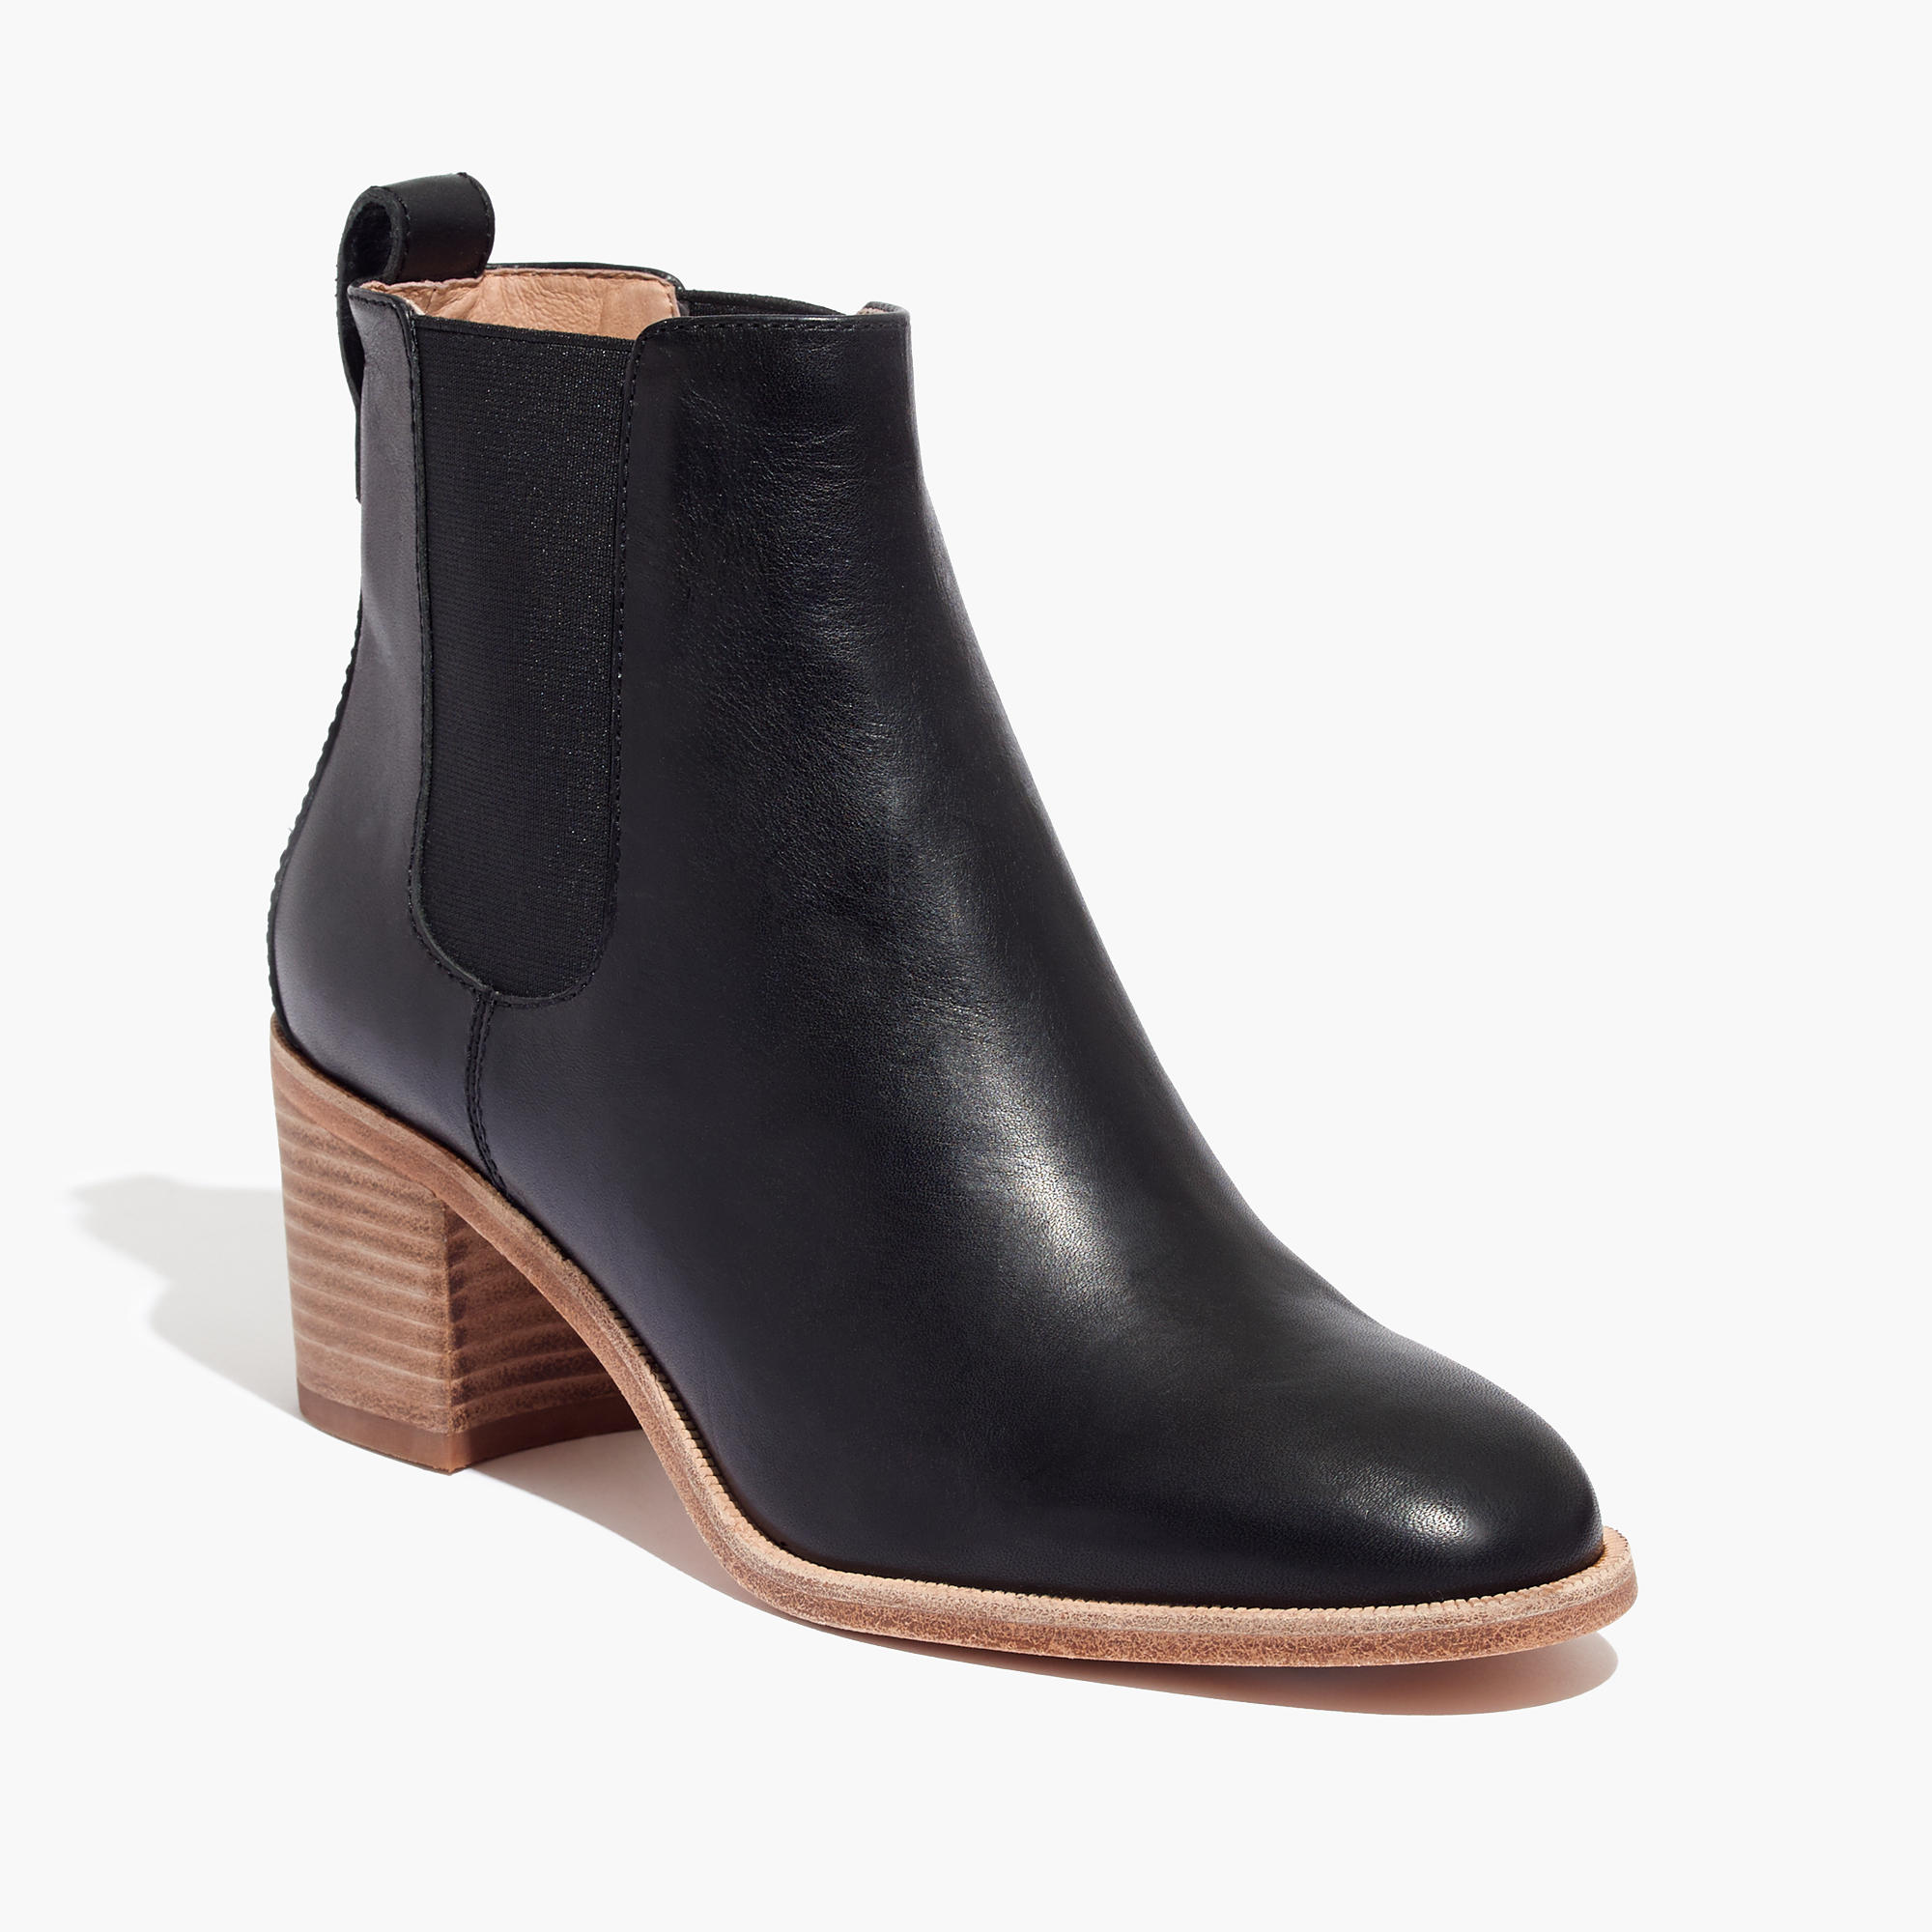 Madewell The Frankie Chelsea Boot